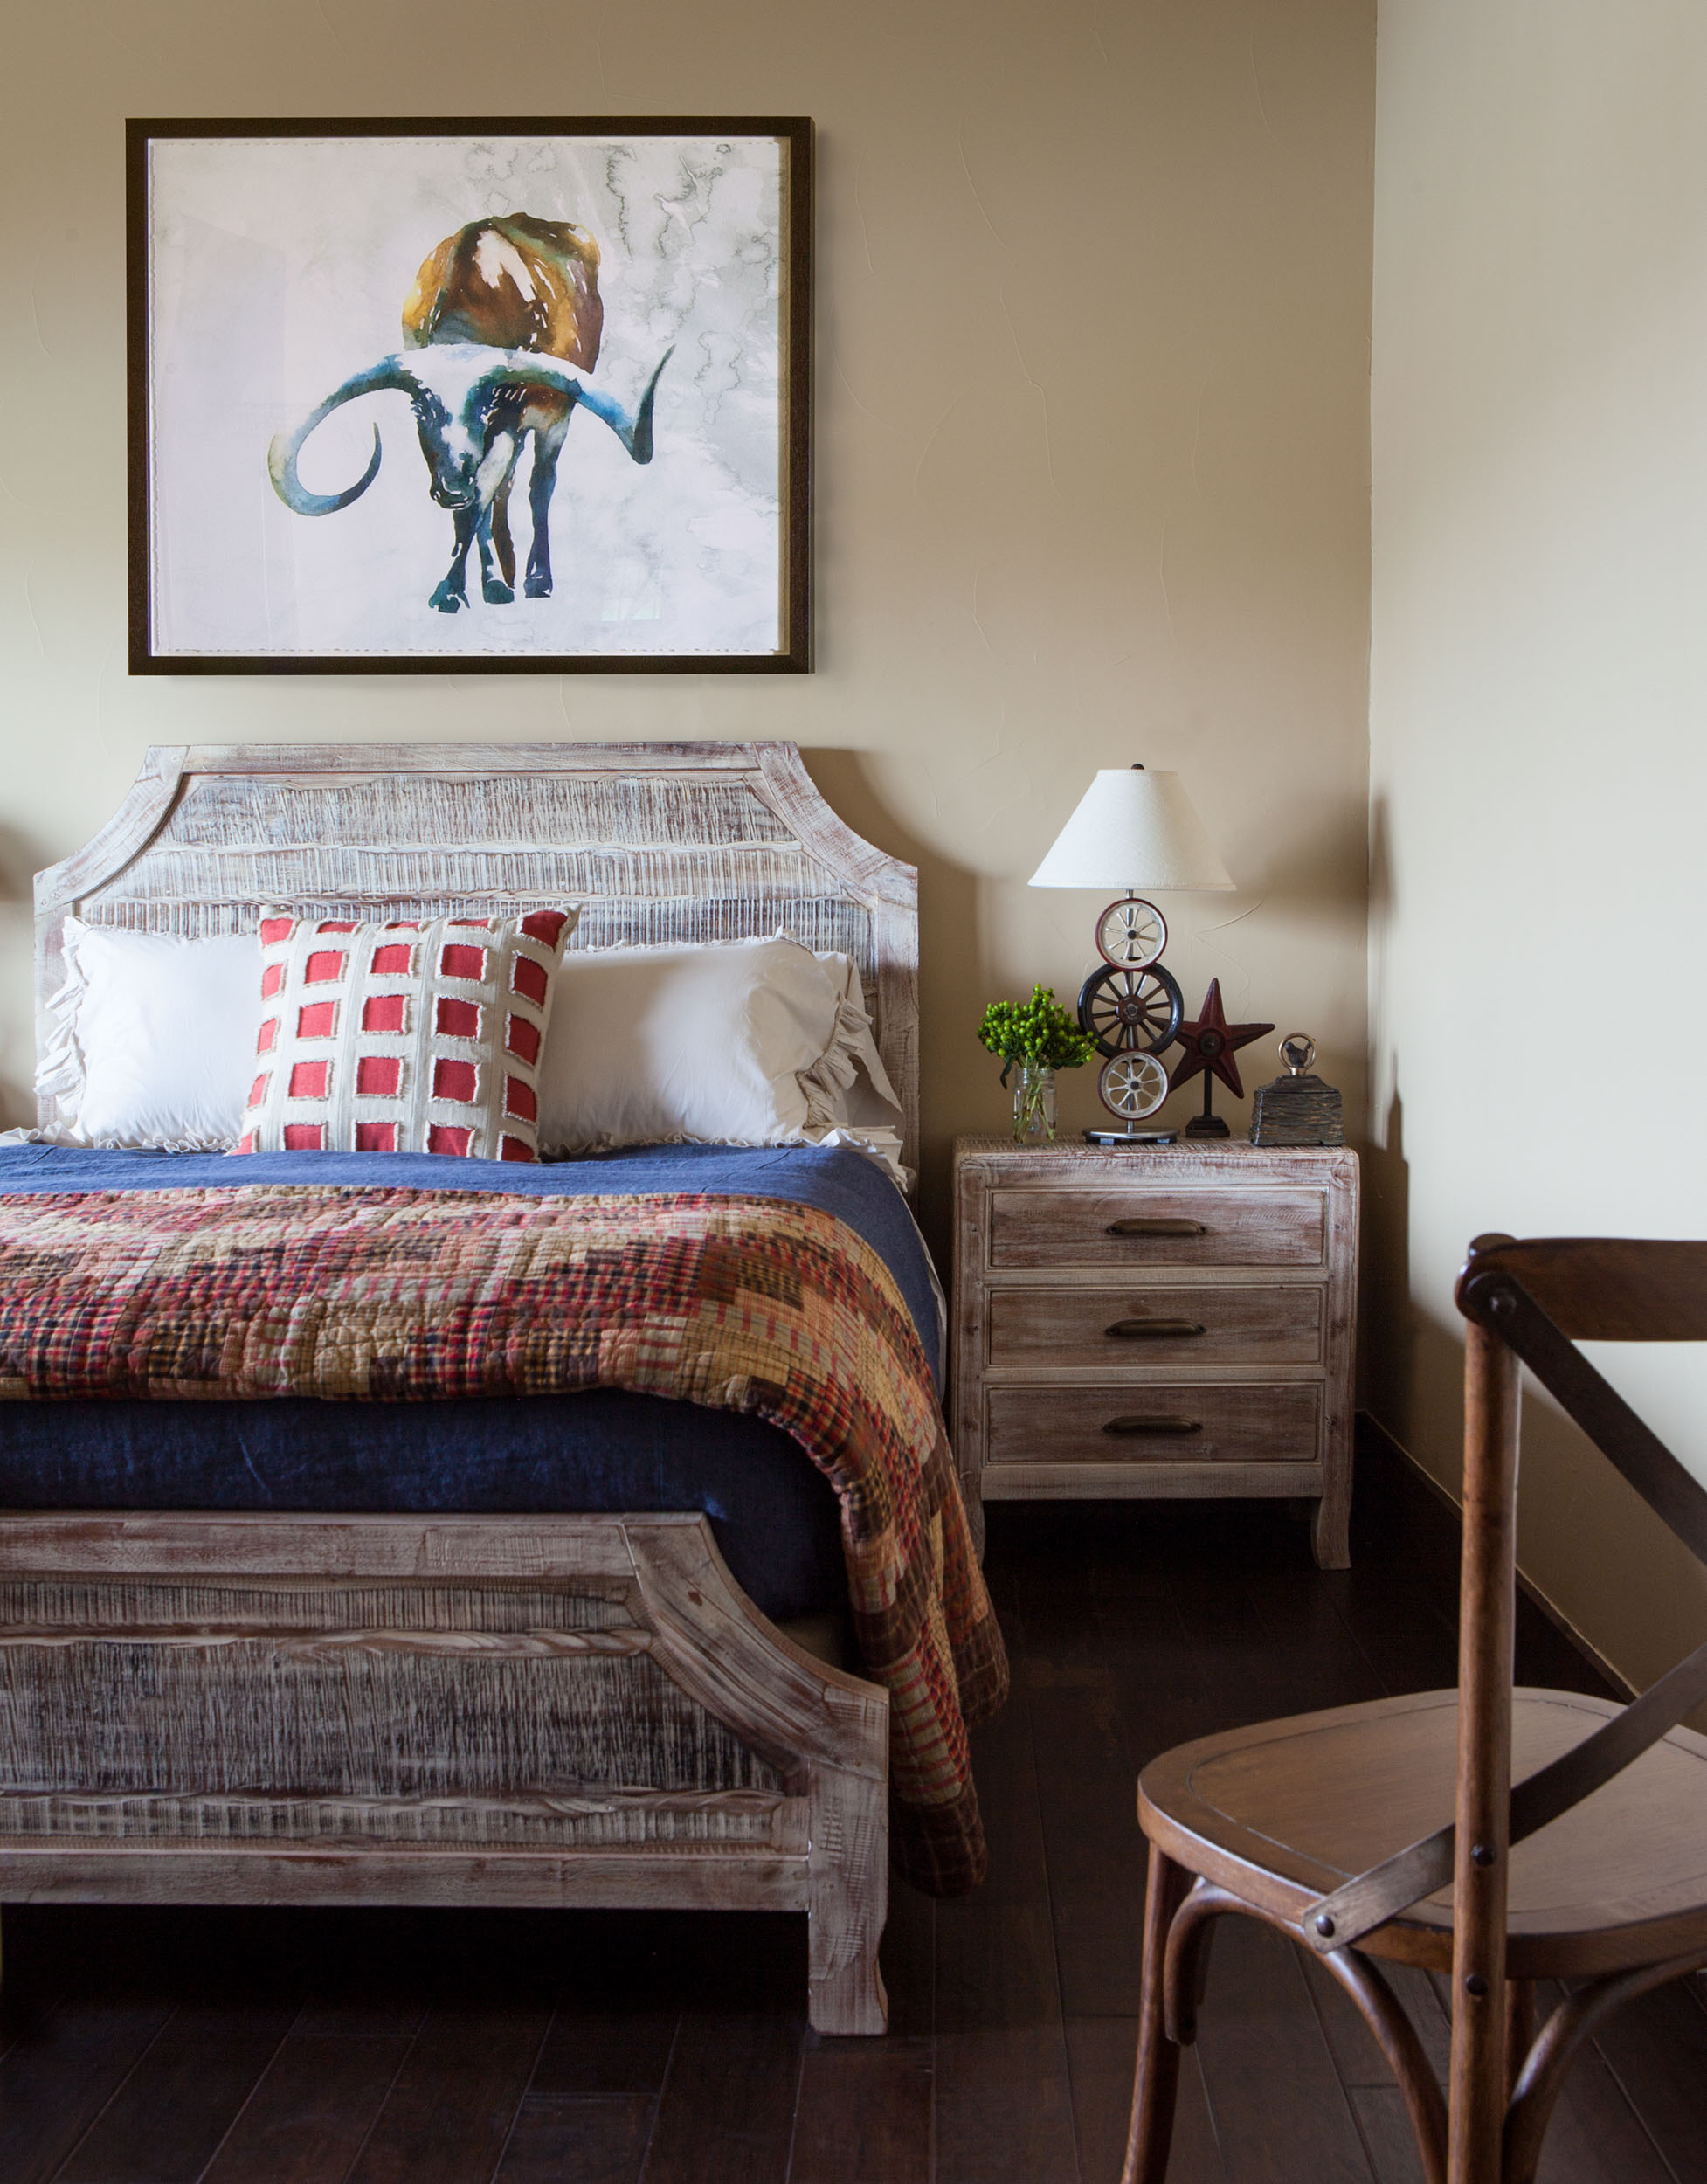 austin-house-bedroom-bed-table-interior-design.jpg